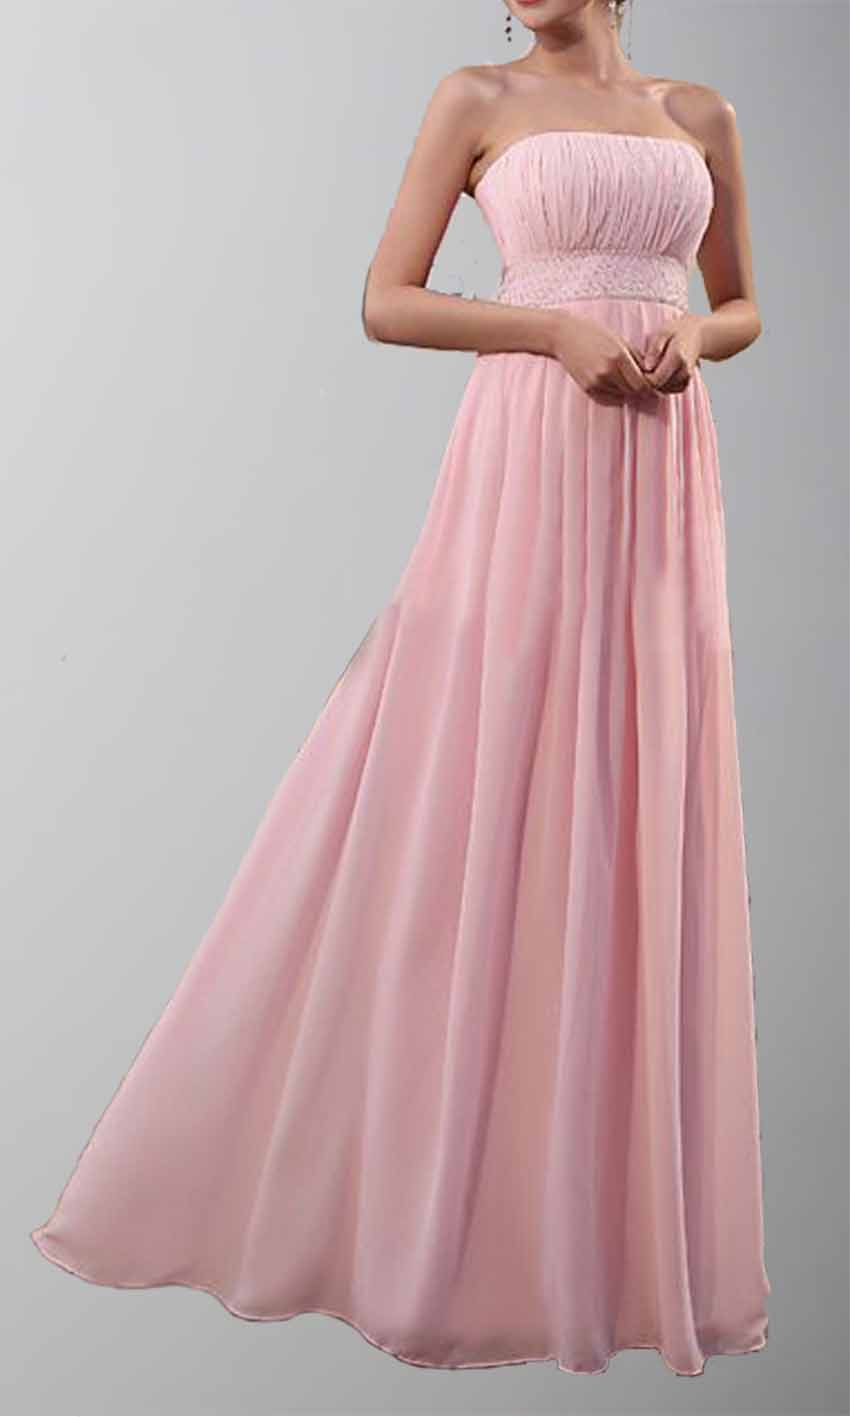 Pink Strapless A-line Long Chiffon Bridesmaid Dress KSP155 [KSP155] - £89.00 : Cheap Prom Dresses Uk, Bridesmaid Dresses, 2014 Prom & Evening Dresses, Look for cheap elegant prom dresses 2014, cocktail gowns, or dresses for special occasions? kissprom.co.uk offers various bridesmaid dresses, evening dress, free shipping to UK etc.